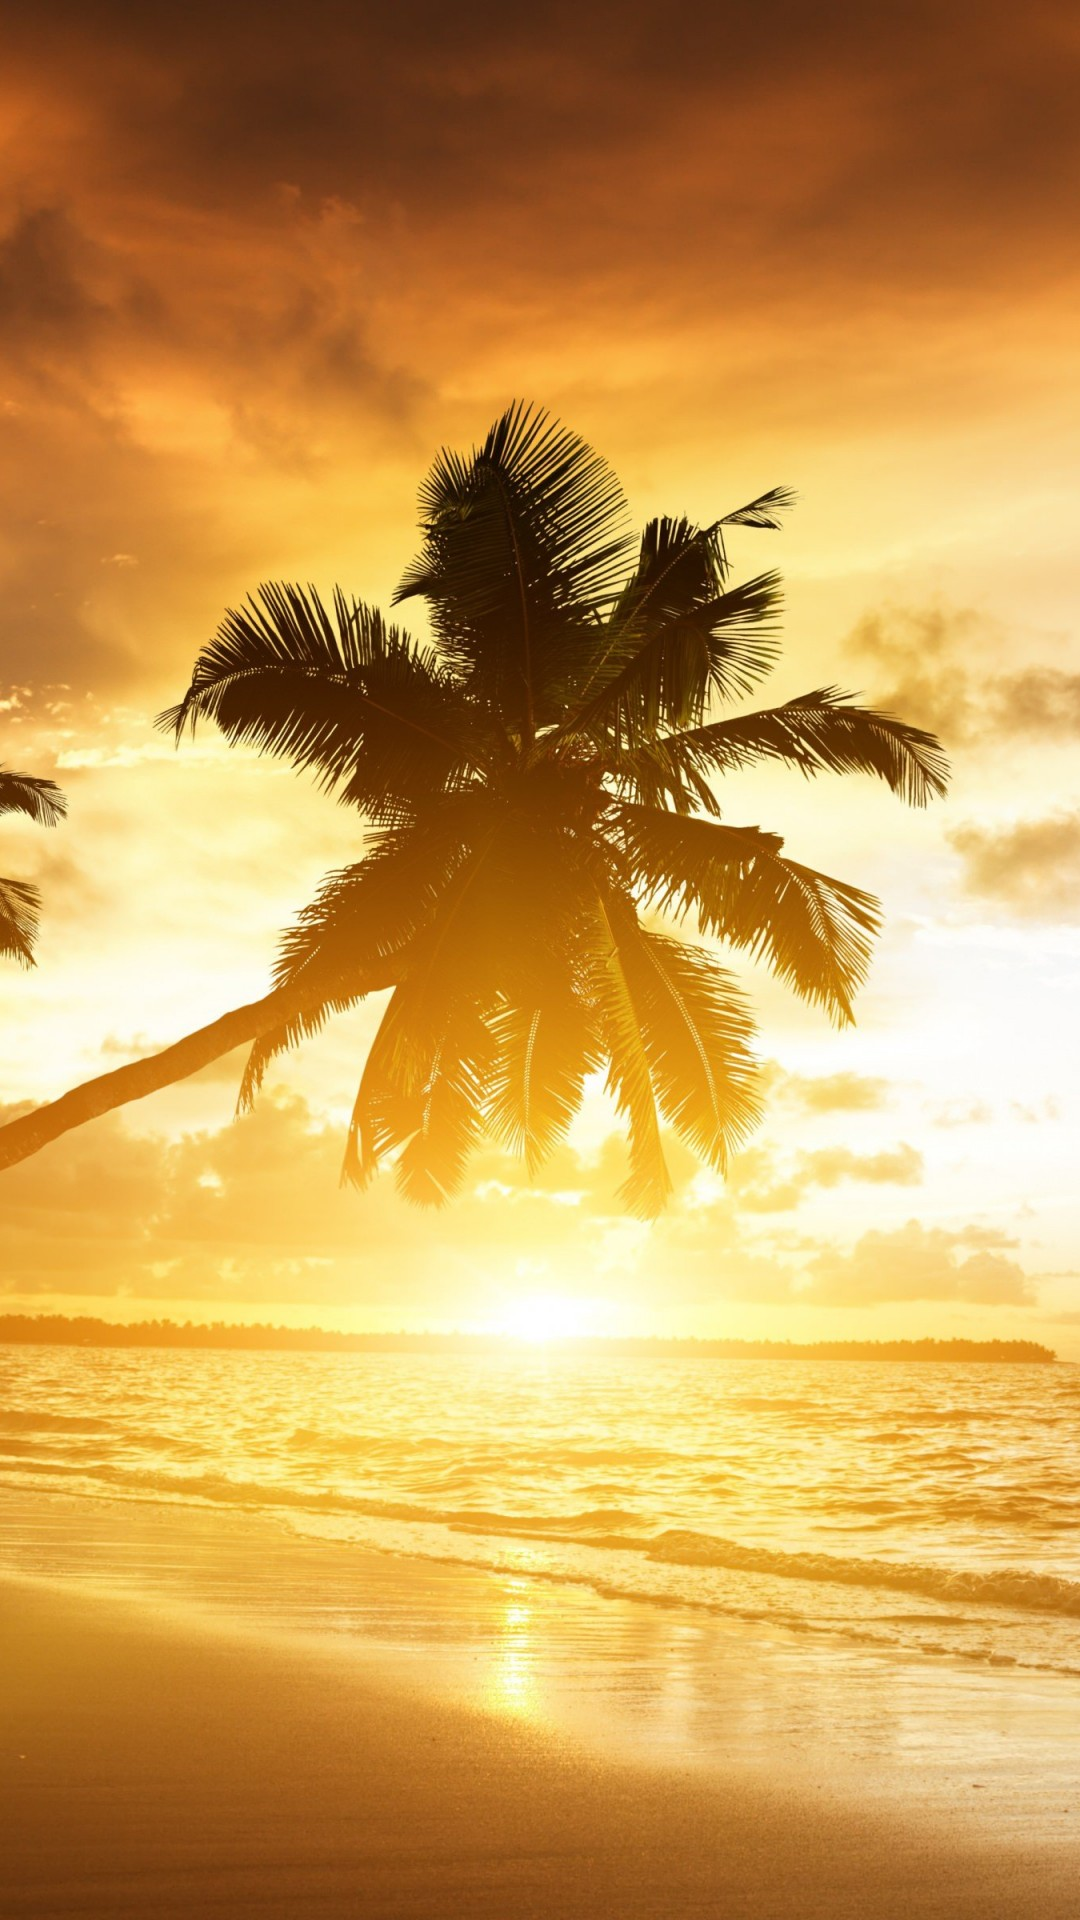 Beach With Palm Trees At Sunset Wallpaper for SAMSUNG Galaxy S5